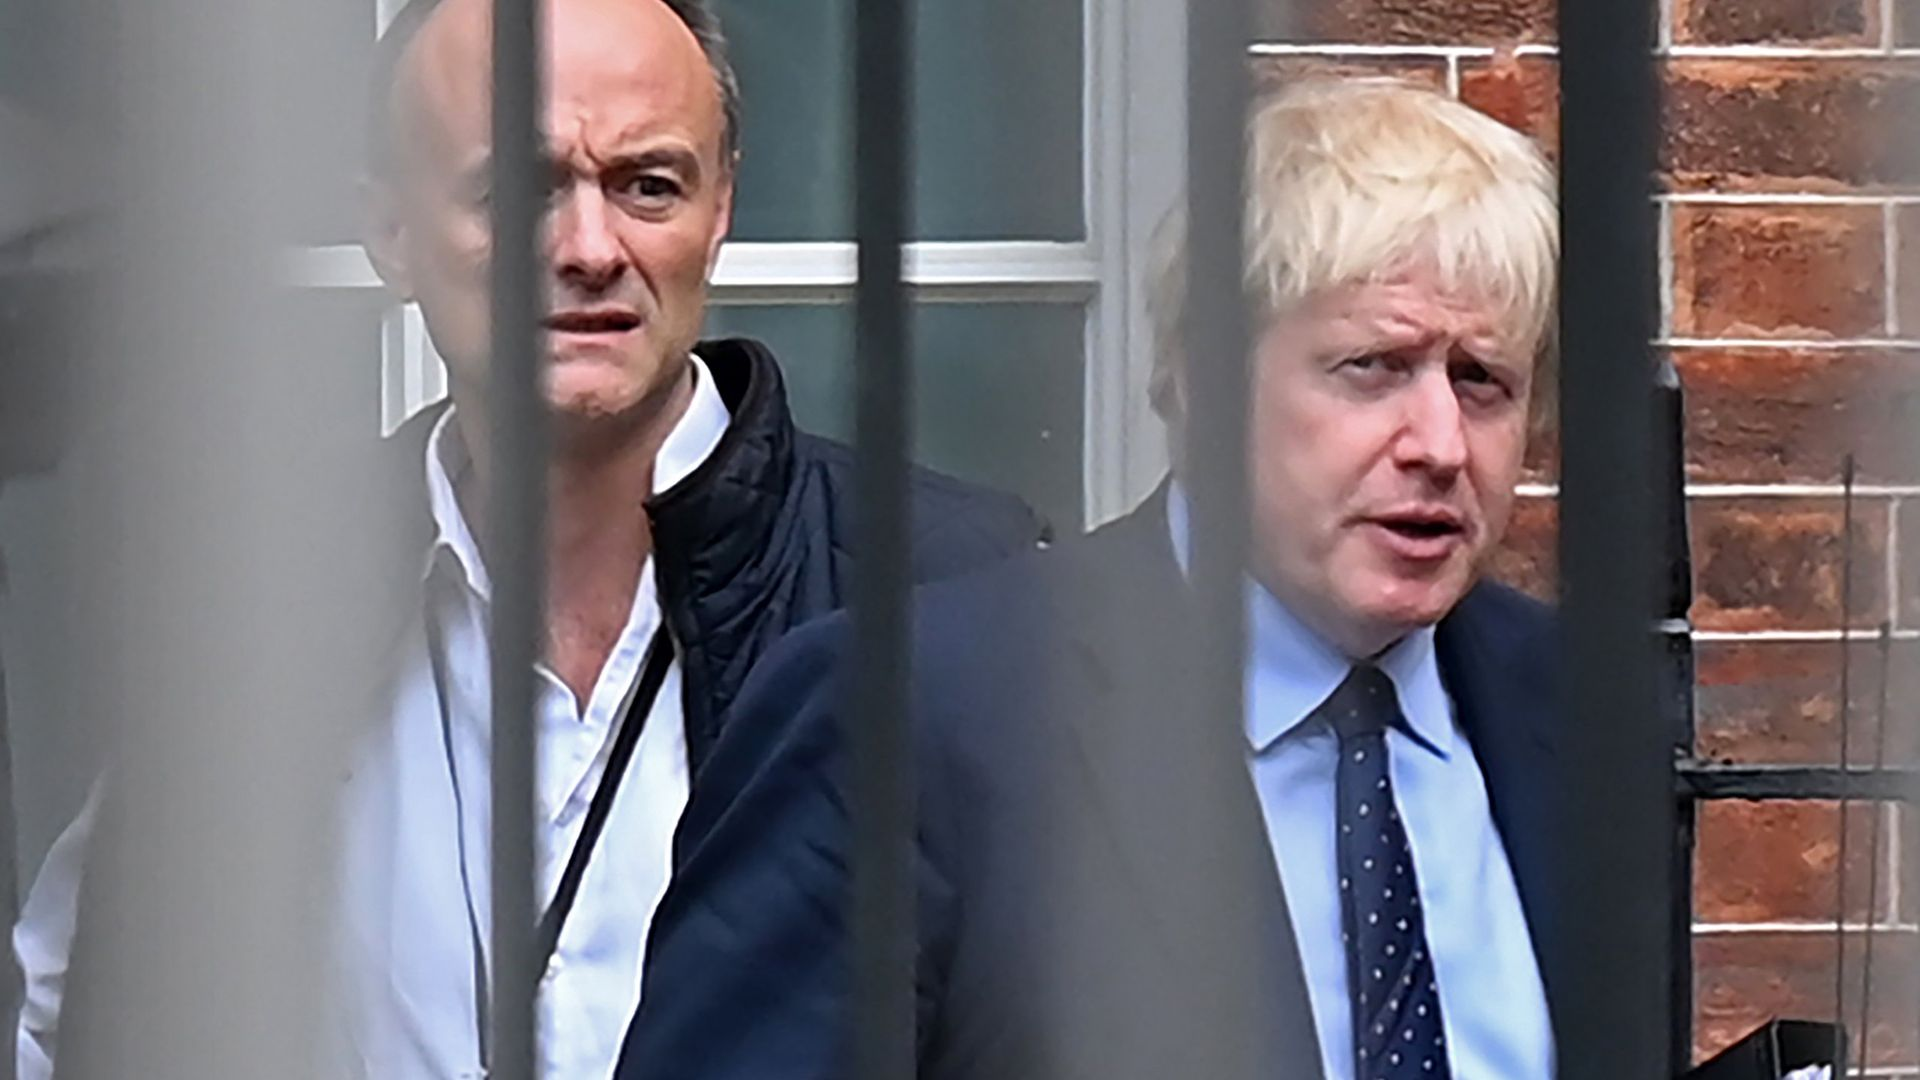 Britain's Prime Minister Boris Johnson (R) and former special advisor Dominic Cummings leave from the rear of Downing Street - Credit: AFP via Getty Images